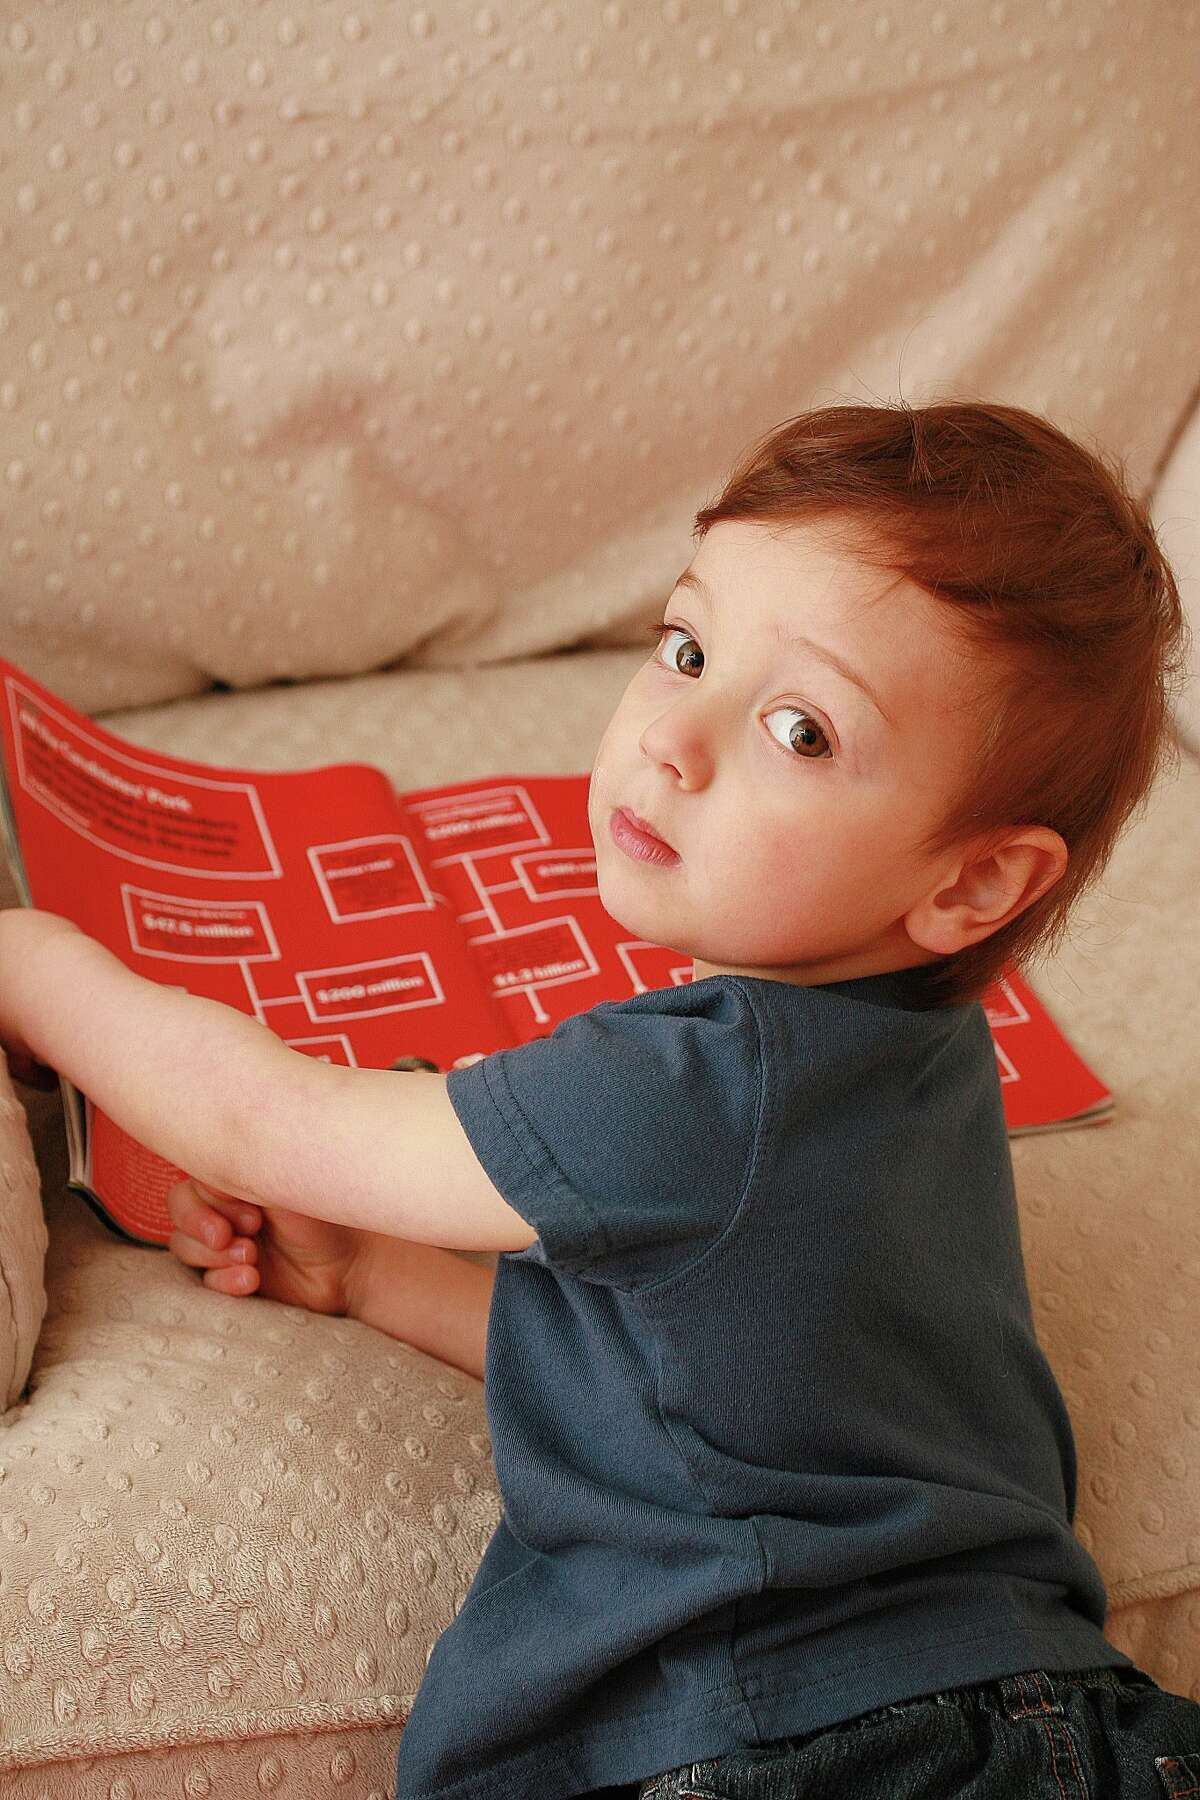 Christopher Salvaggio, 3, has an IQ of 145.